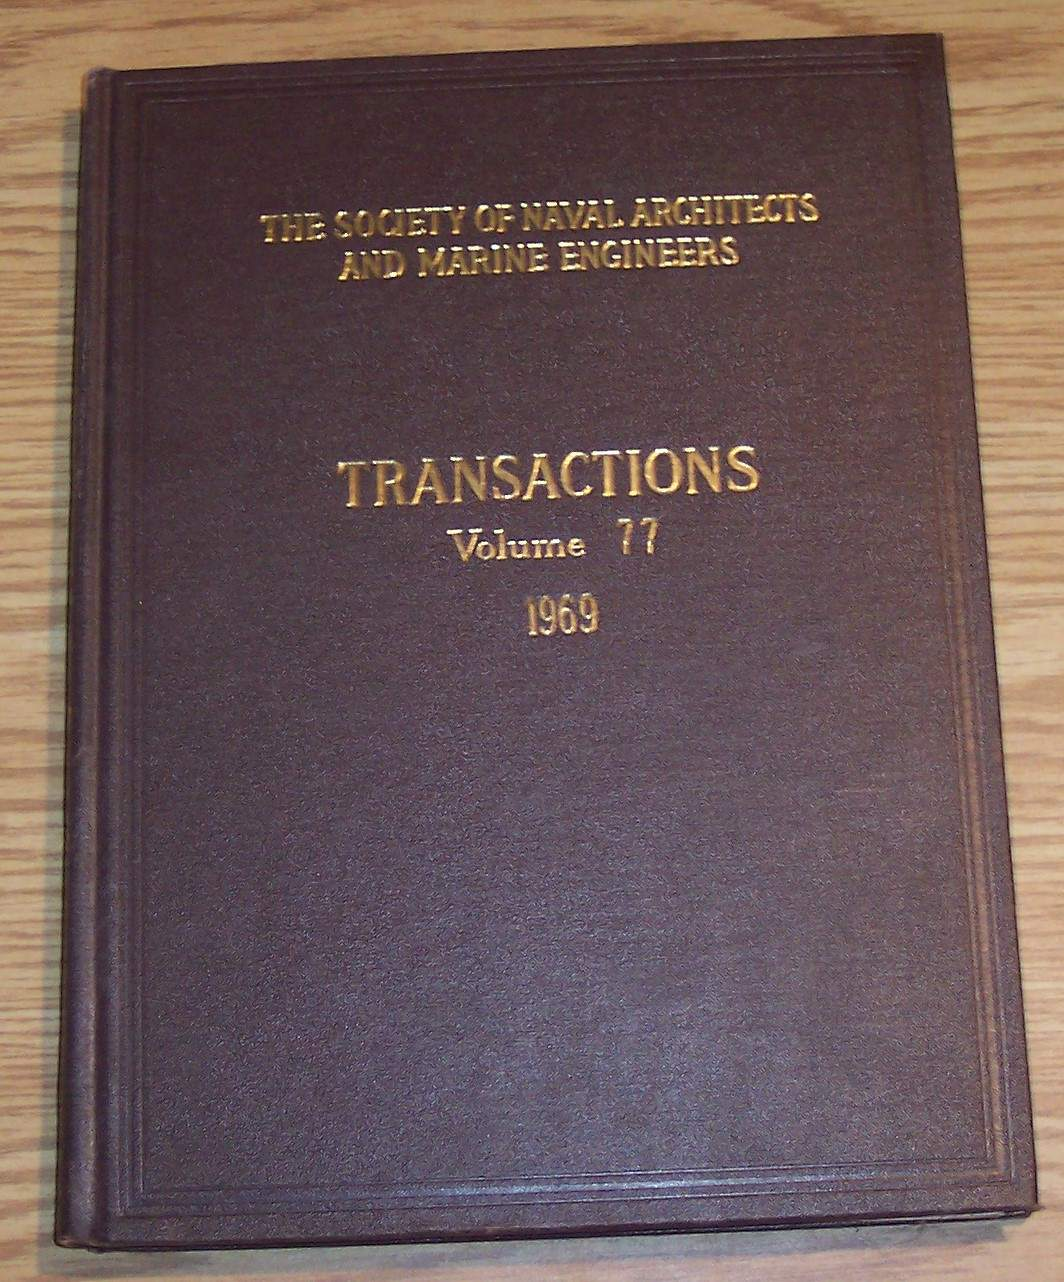 Image for The Society of Naval Architects and Marine Engineers Transactions Volume 77 1969